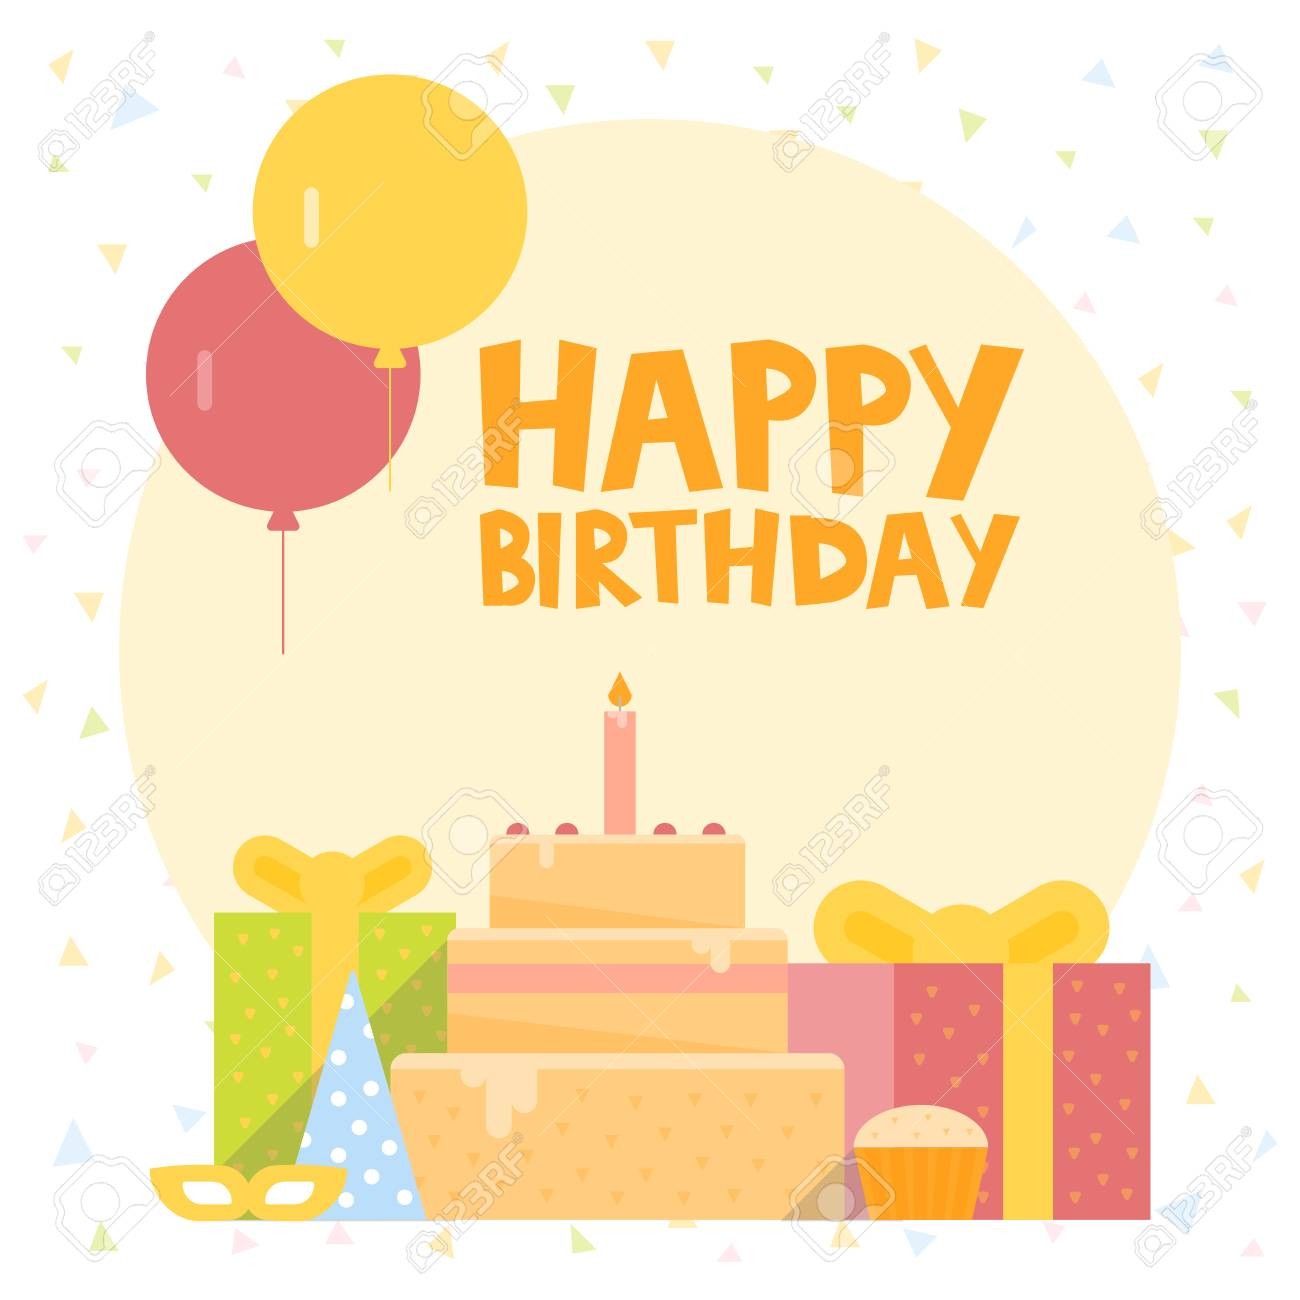 Happy Birthday Card Design With Ballons Confetti Cake And Gift